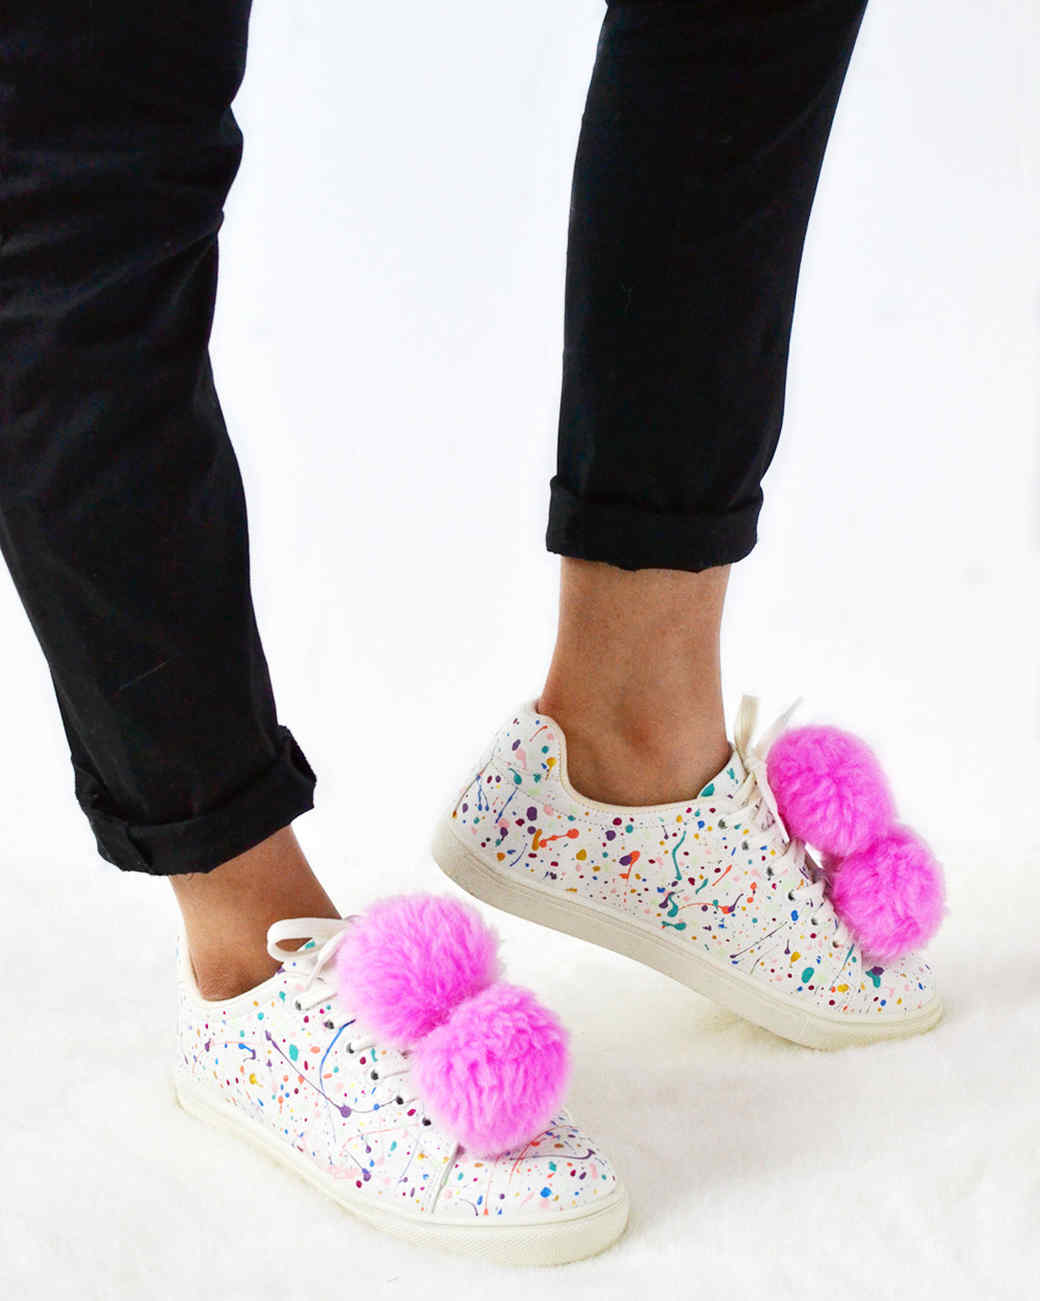 diy-splatter-pom-trainers-final-standing-0417